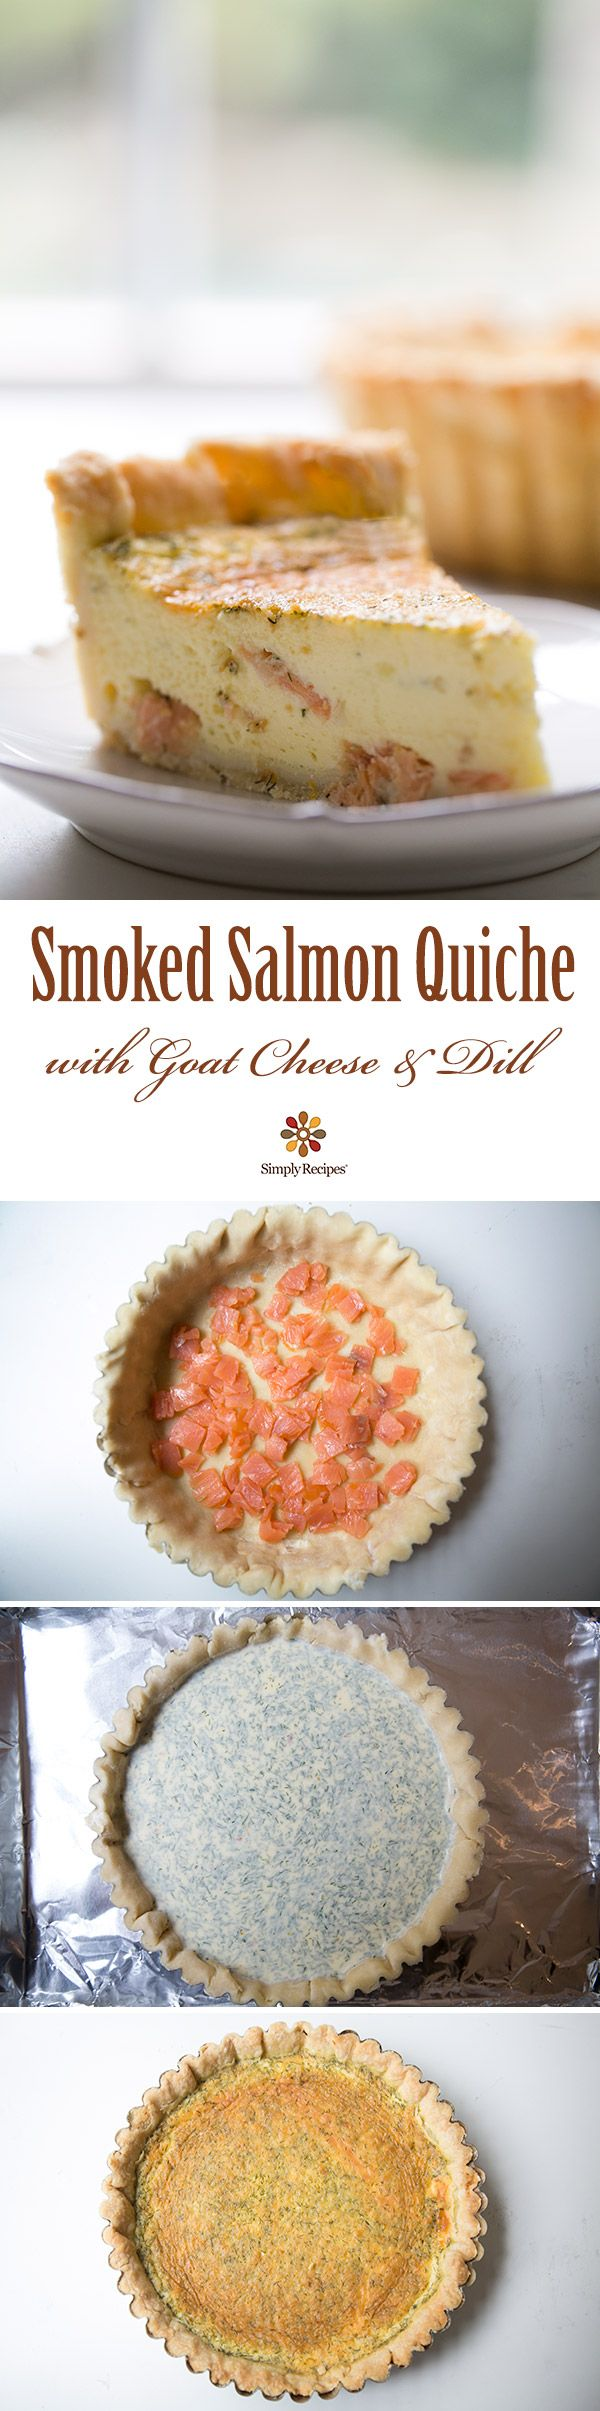 Smoked Salmon, Dill, and Goat Cheese Quiche ~ Quiche with all-butter pastry crust, filled with custard baked with smoked salmon, fresh dill, shallots, and goat cheese. Perfect for an #Easter brunch! ~ SimplyRecipes.com